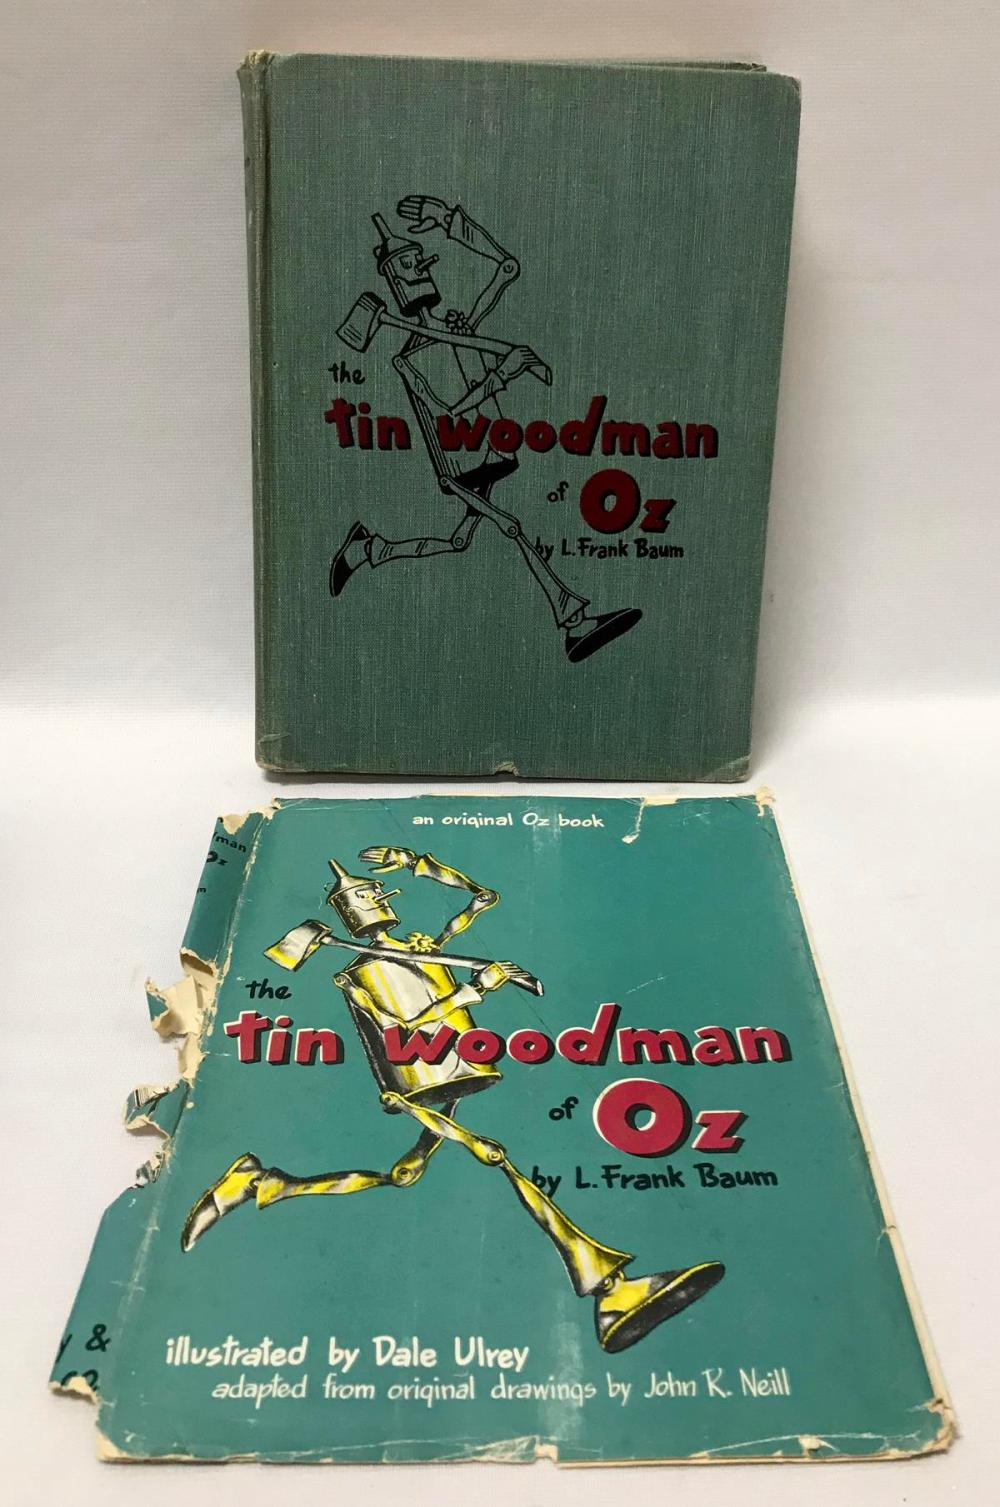 1918 The Tin Man of Oz by L. Frank Baum w/ Dust Jacket